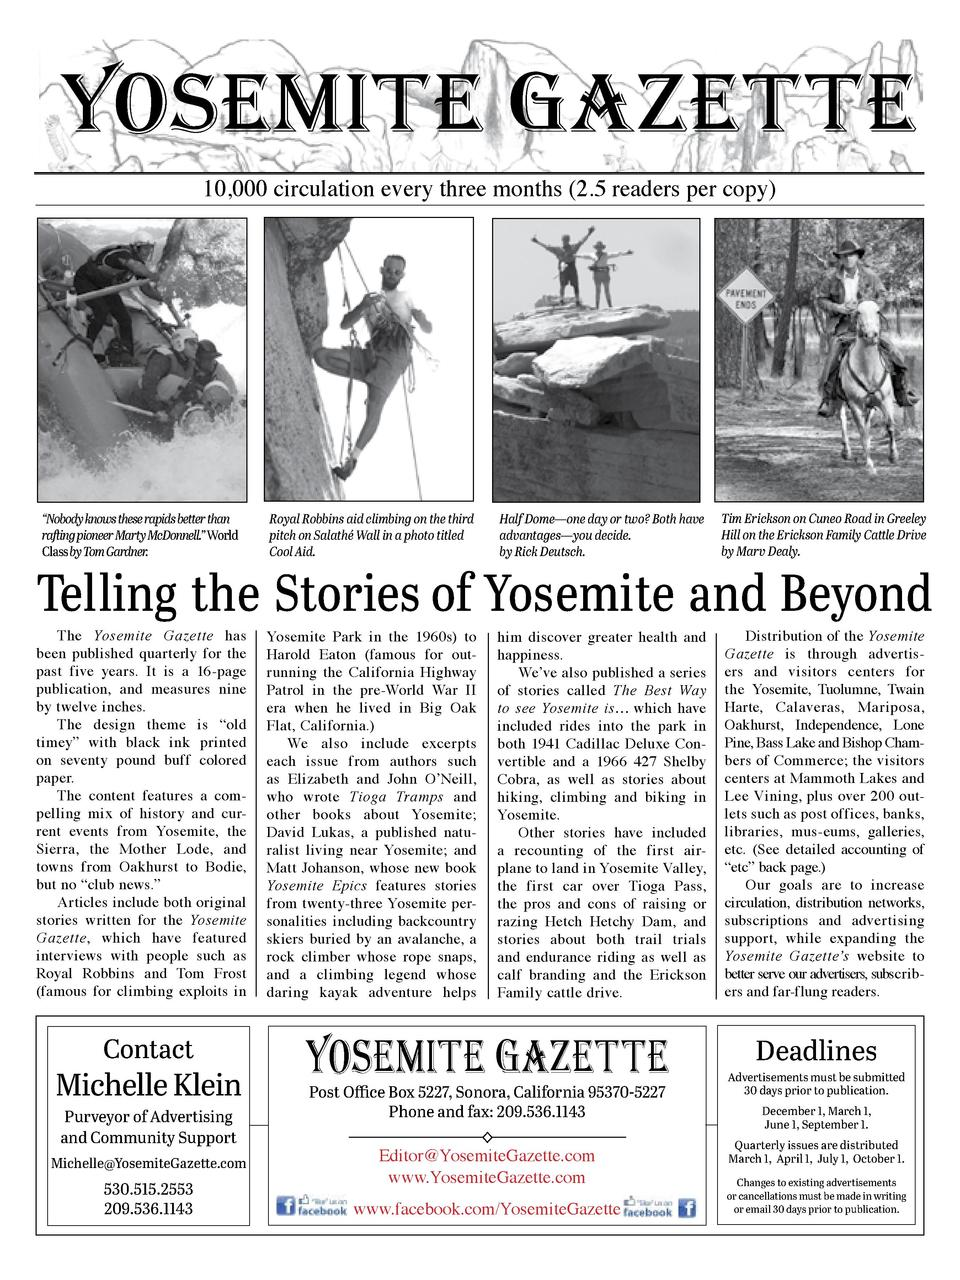 YOSEMITE GAZETTE 10,000 circulation every three months  2.5 readers per copy      Nobody knows these rapids better than ra...